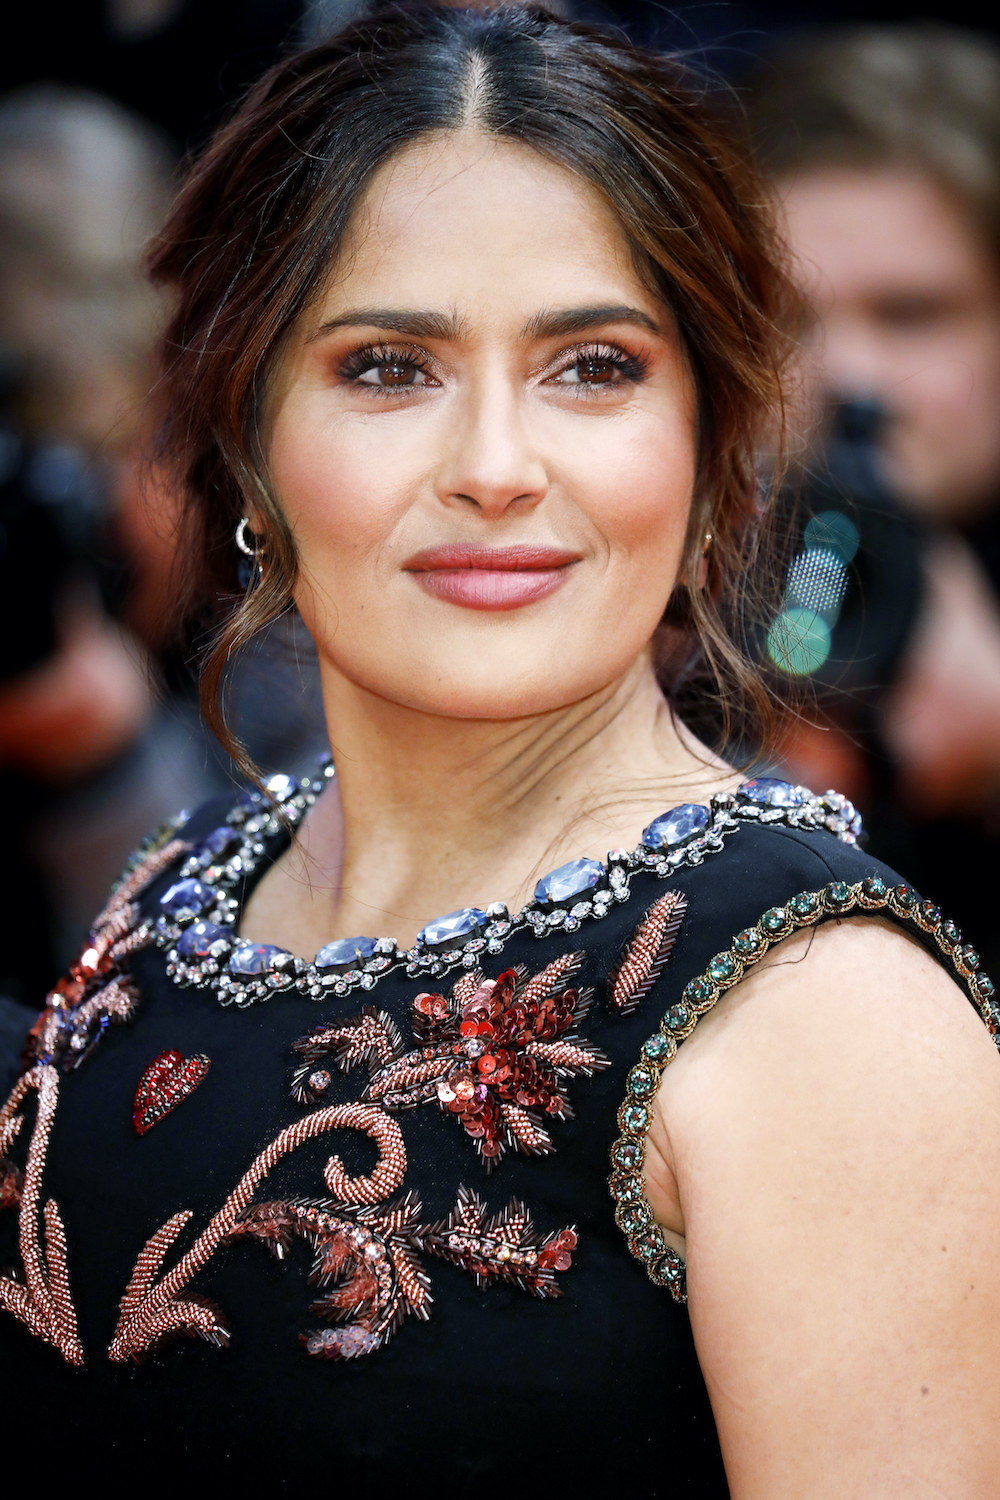 Salma Hayek wears a dress with a jeweled collar for the premiere of The Roads Not Taken at the Berlin Film Festival